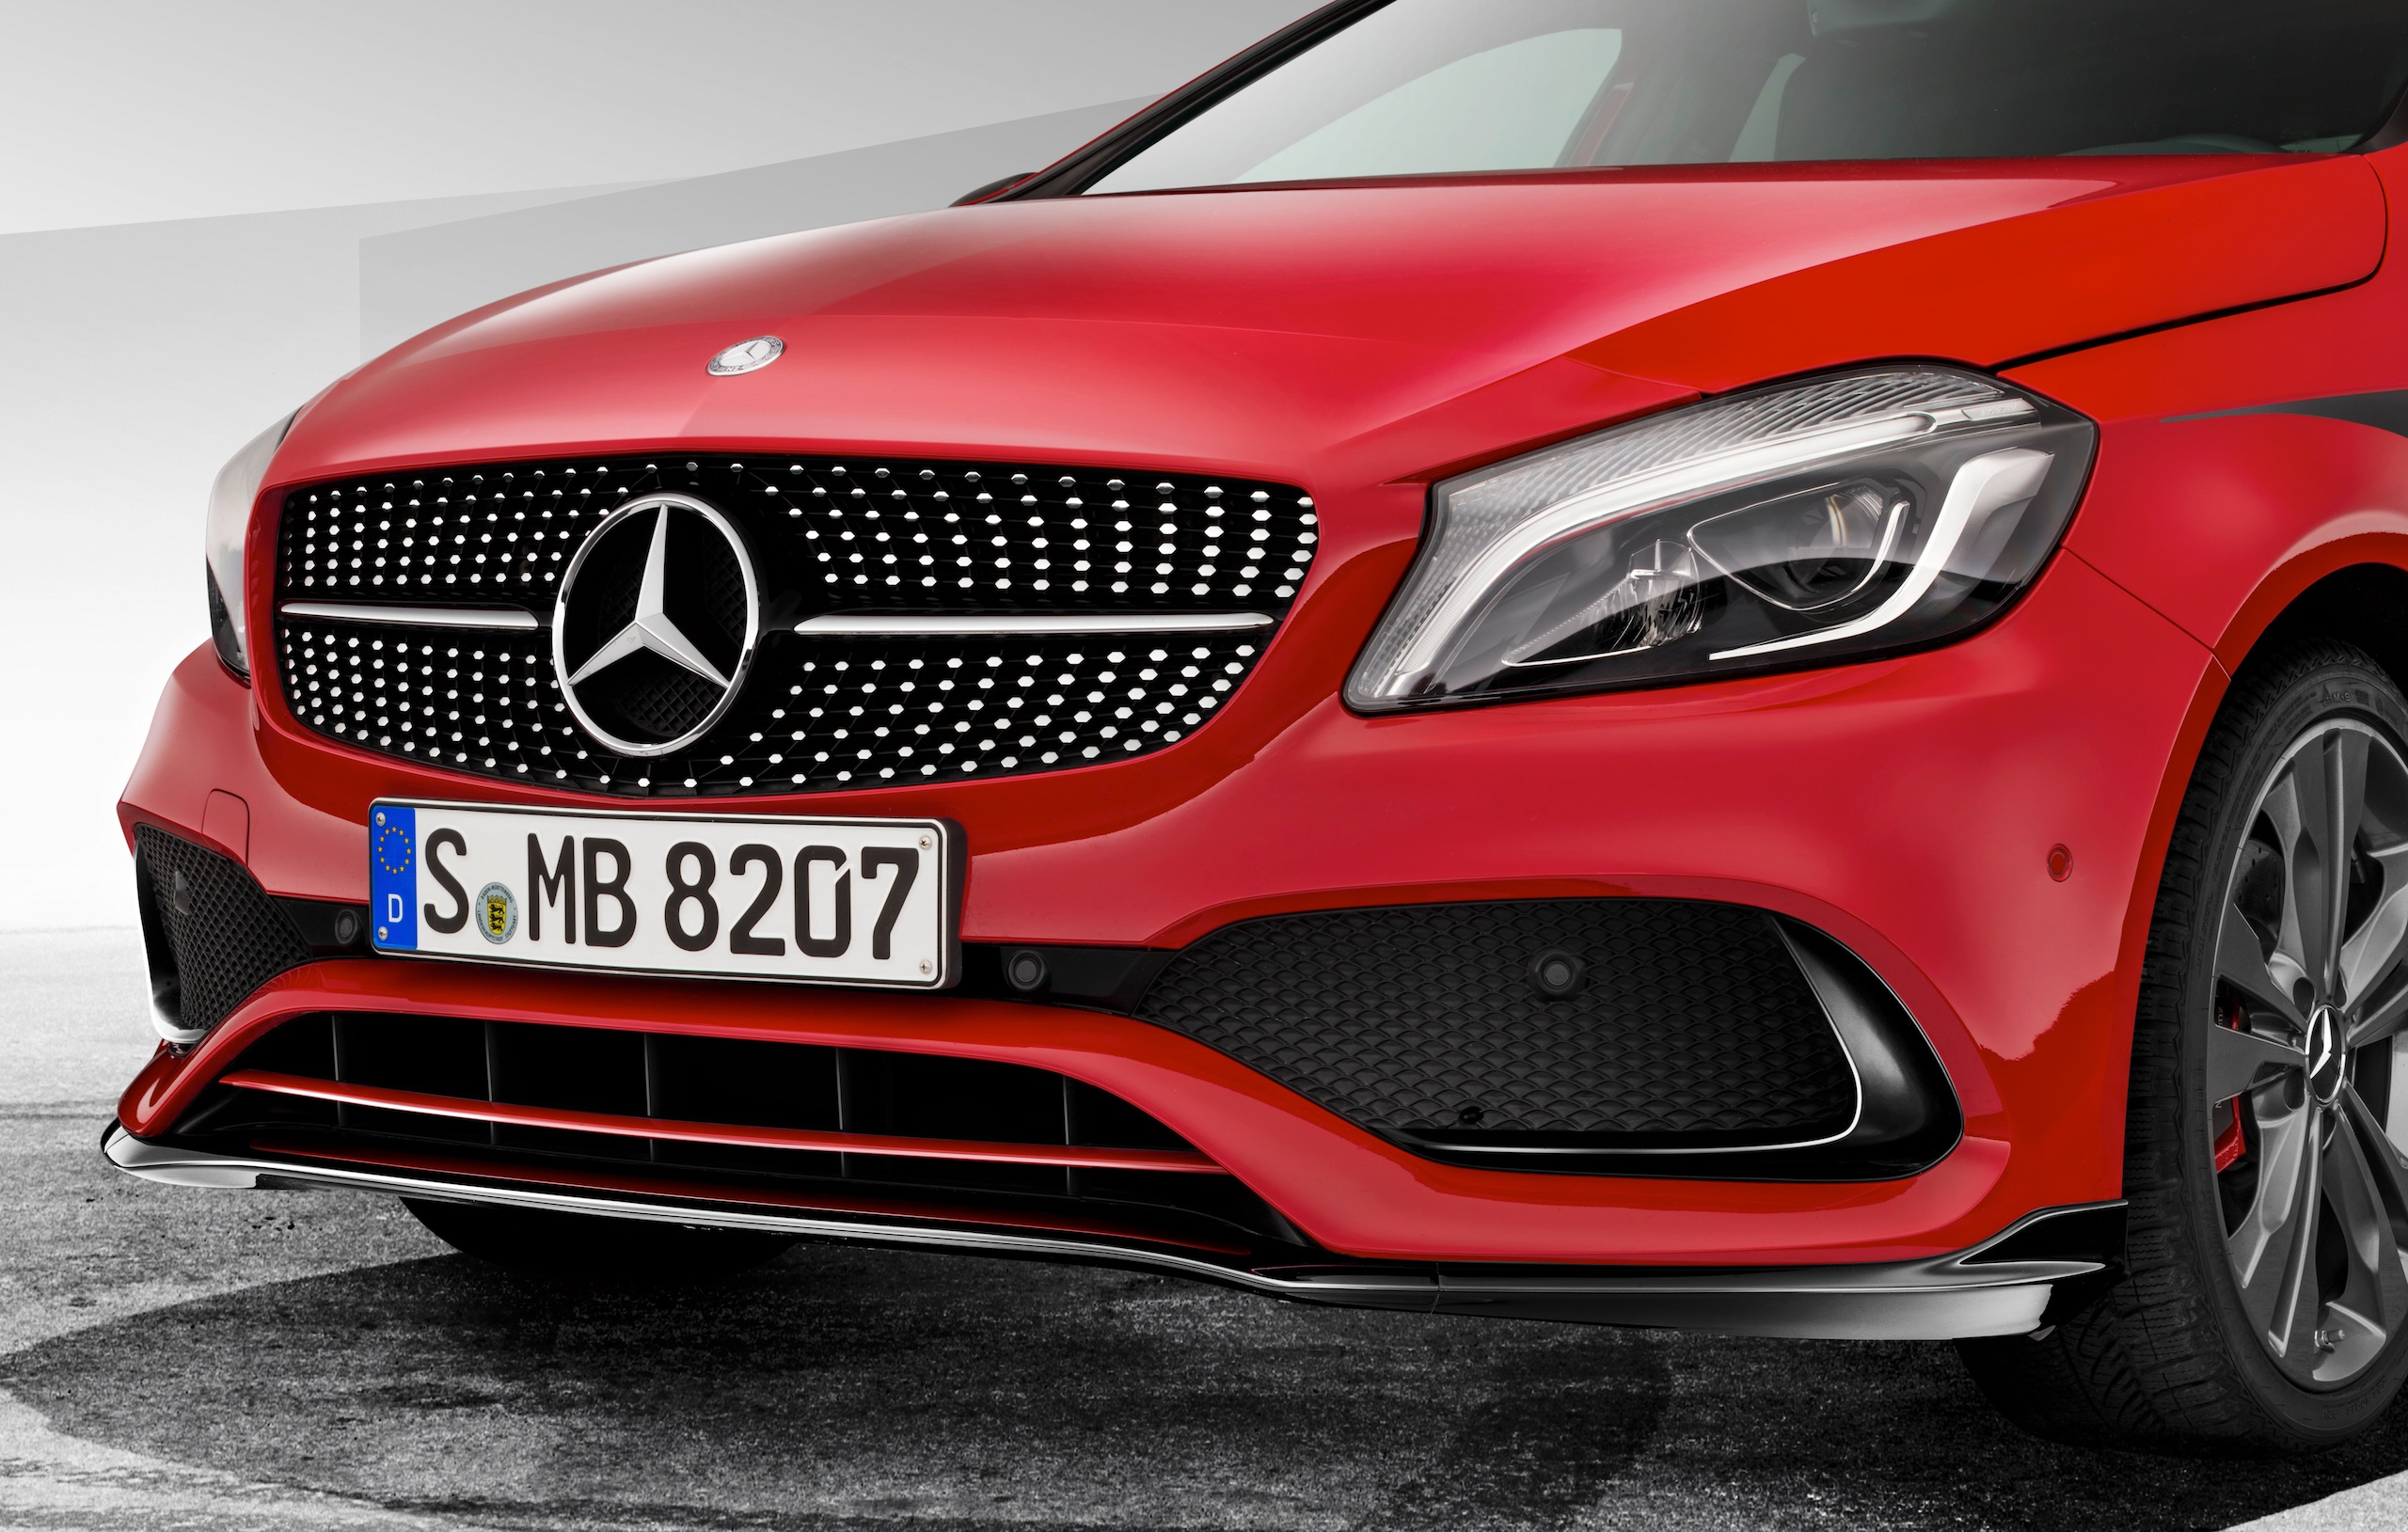 mercedes benz a class fl gets new amg accessories image 449084